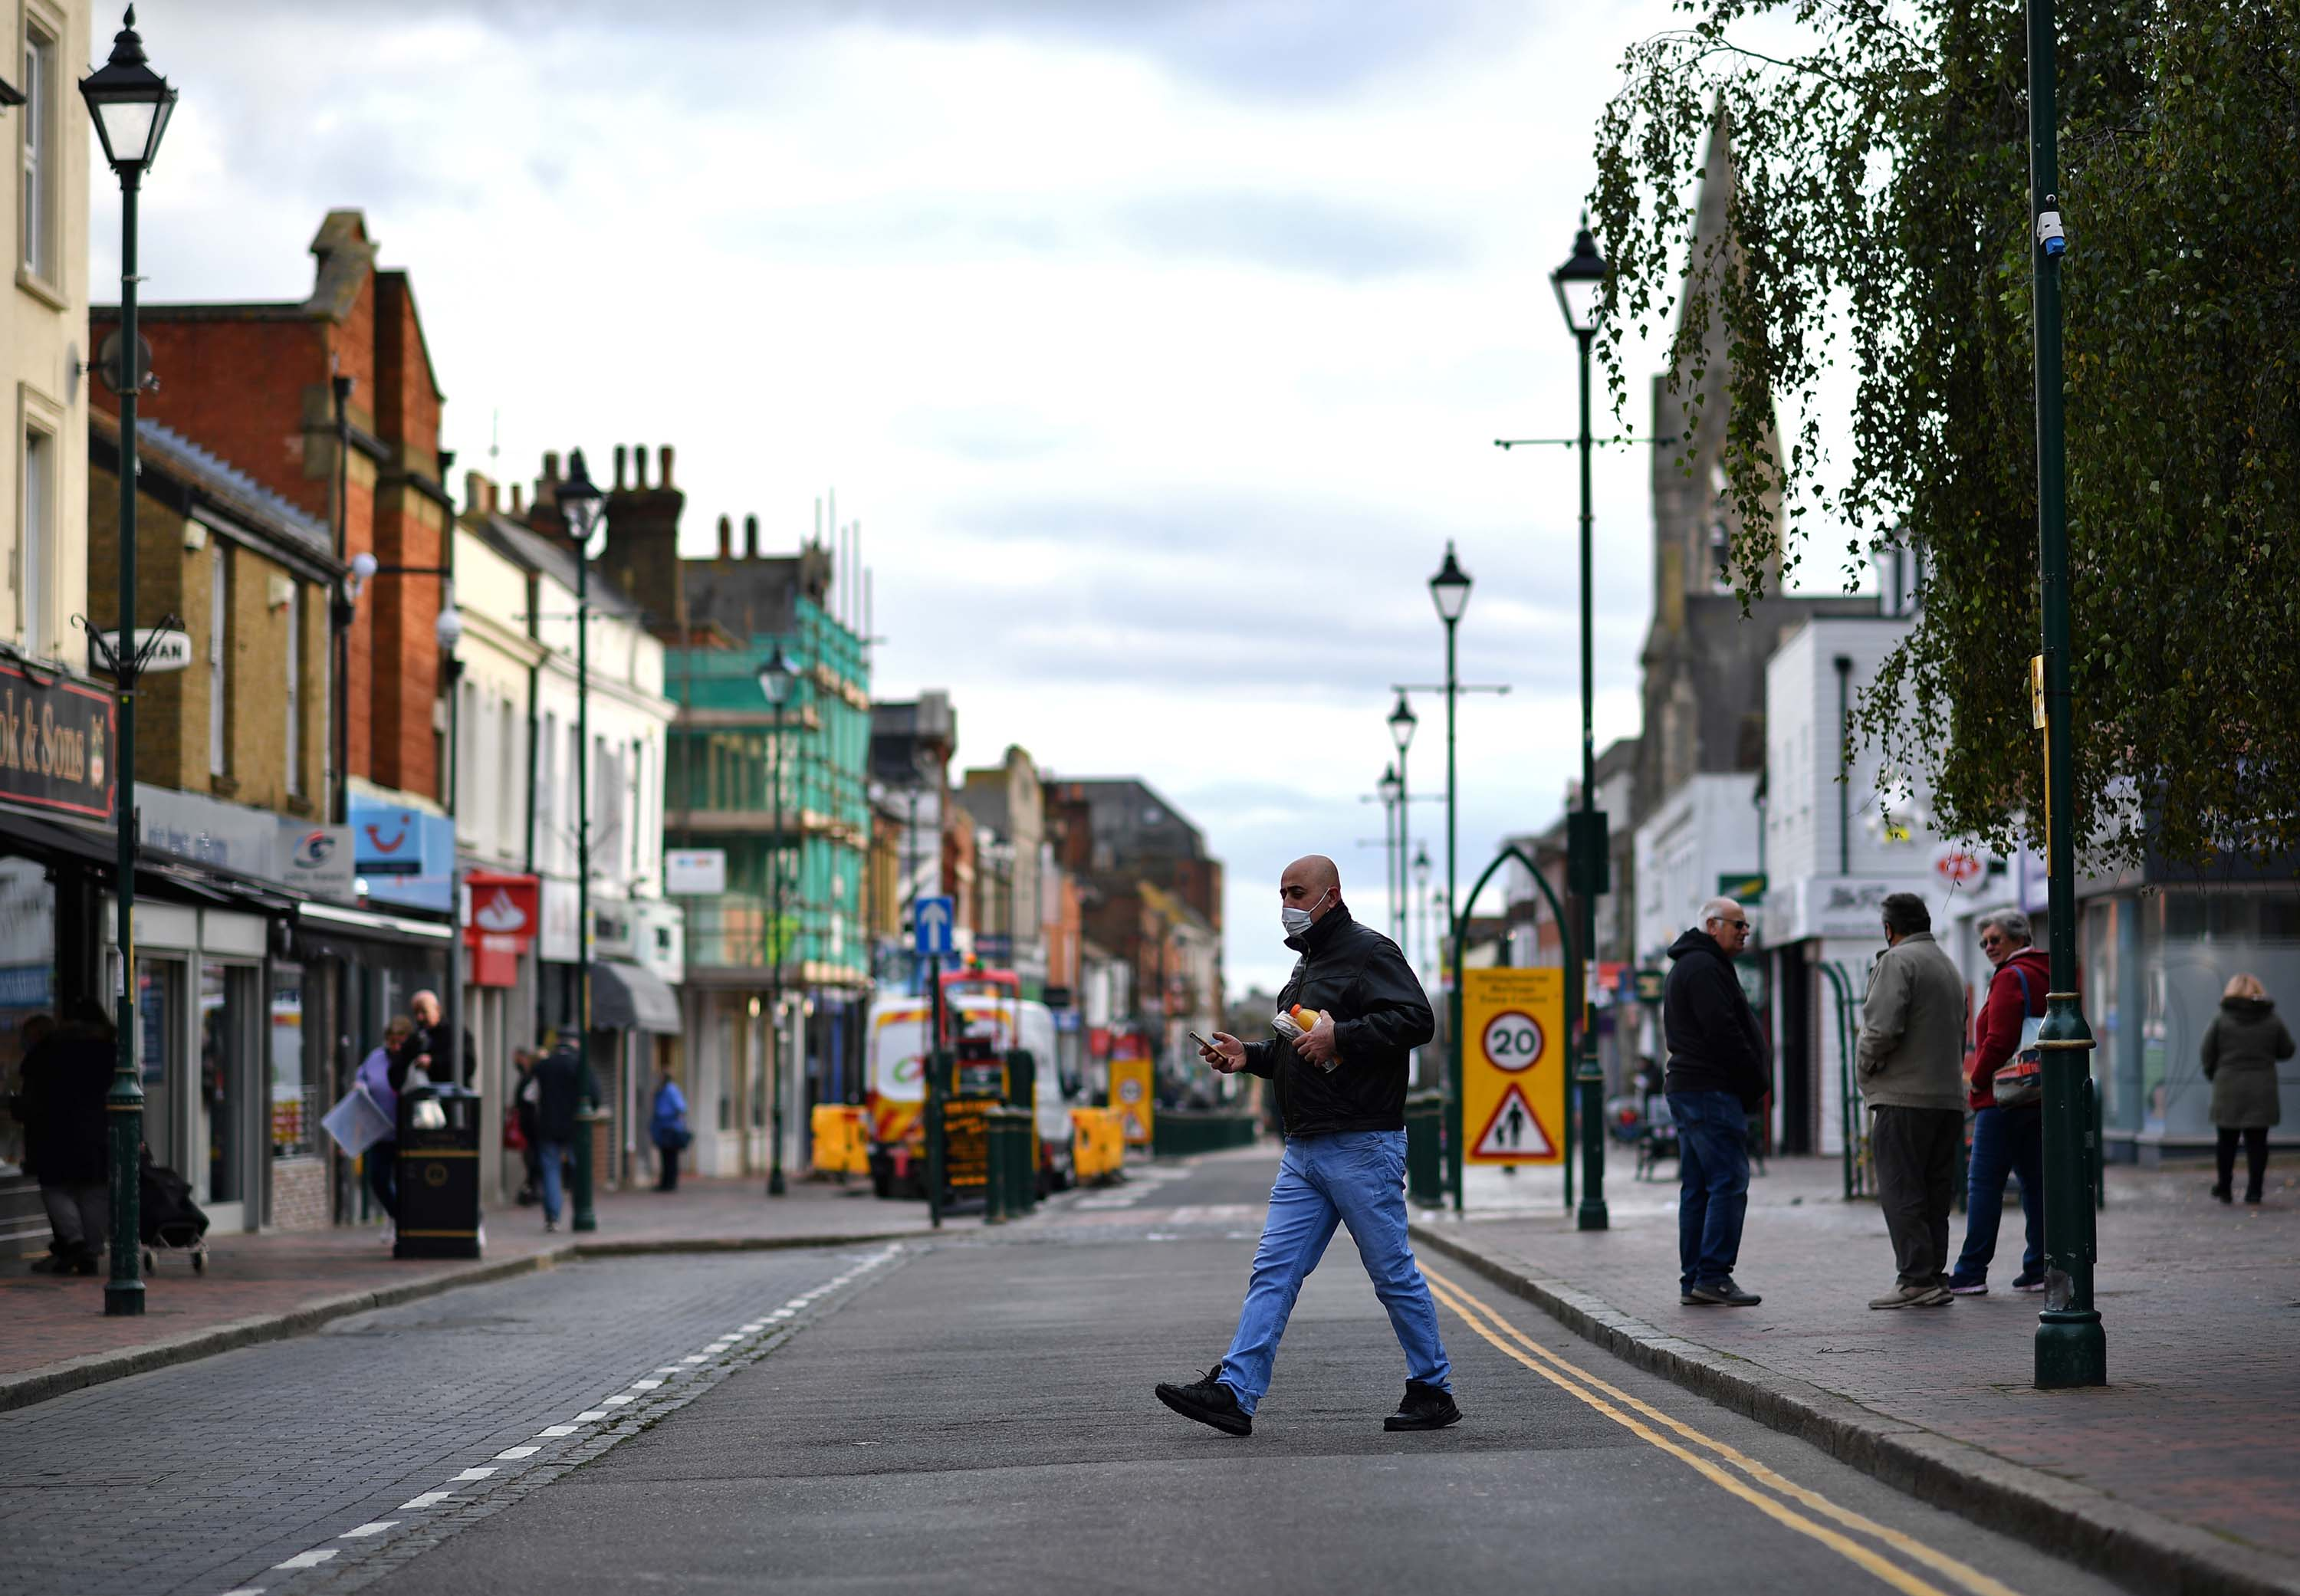 Pedestrians walk in a street in Sittingbourne, in the Swale district of Kent, England, which has become a coronavirus hotspot, on November 24.